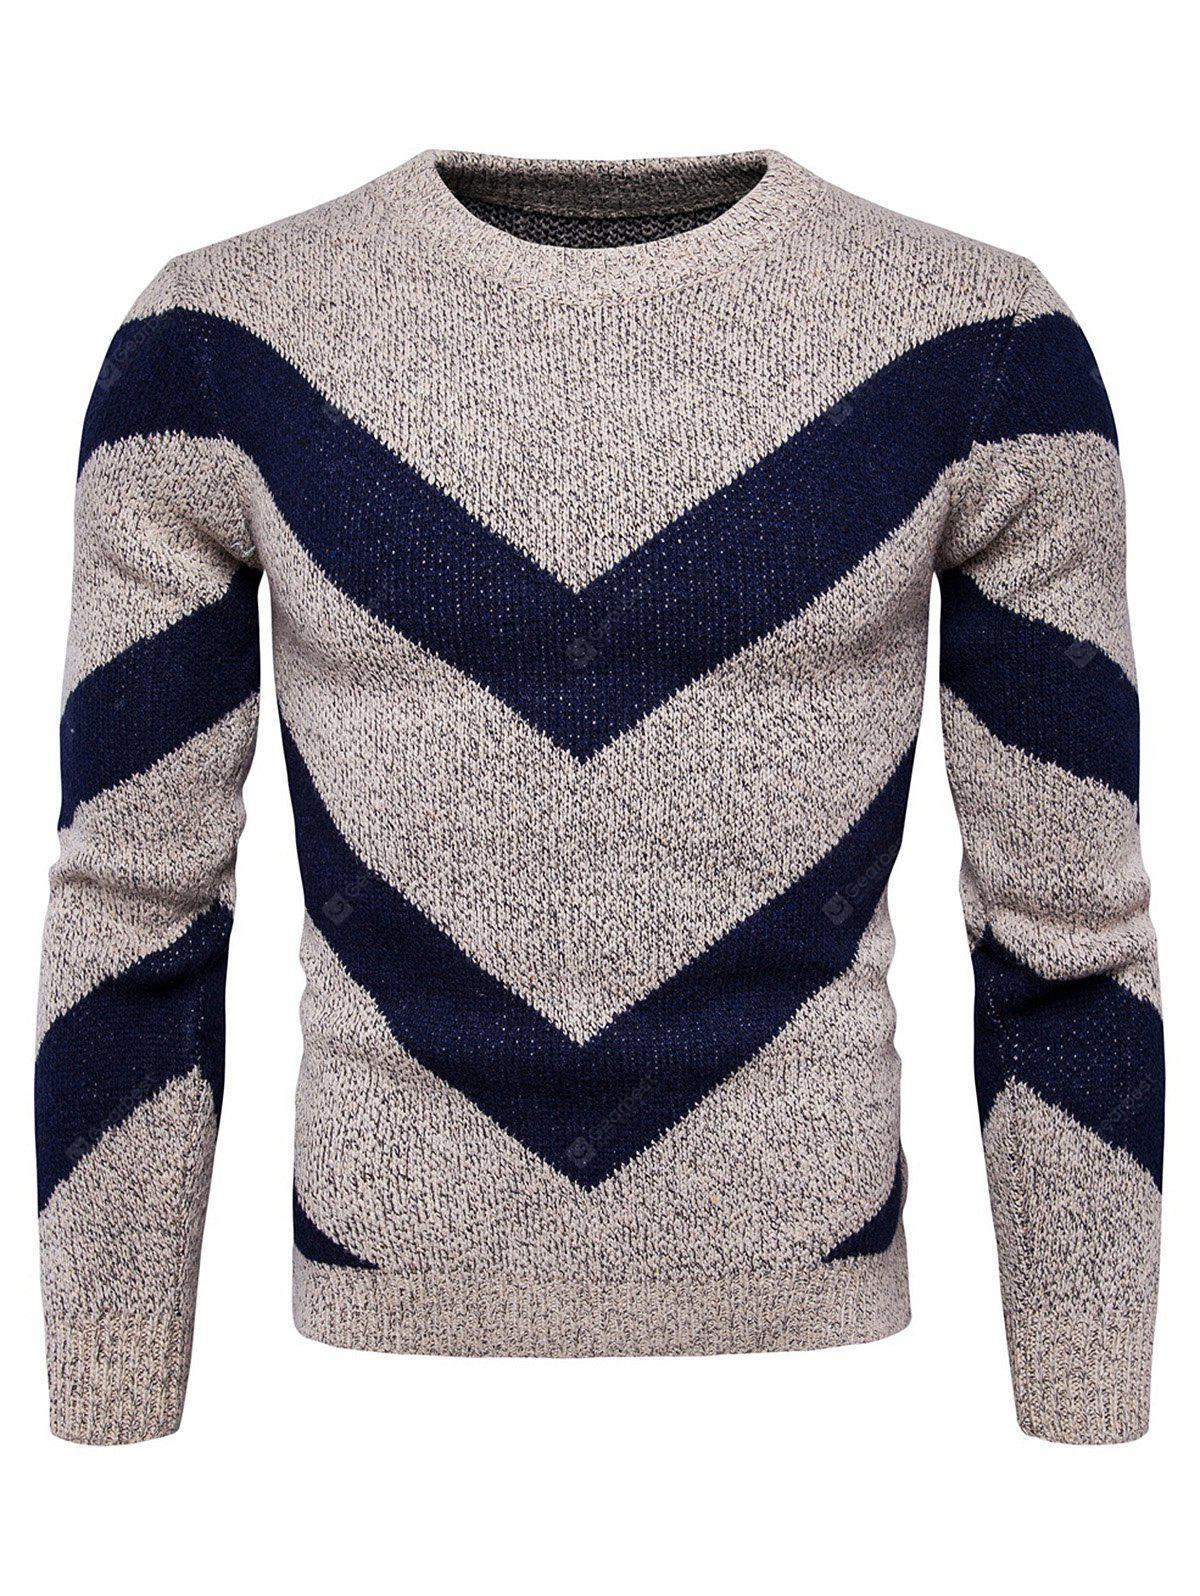 Chic Round Neck Stripes Printed Sweater for Men